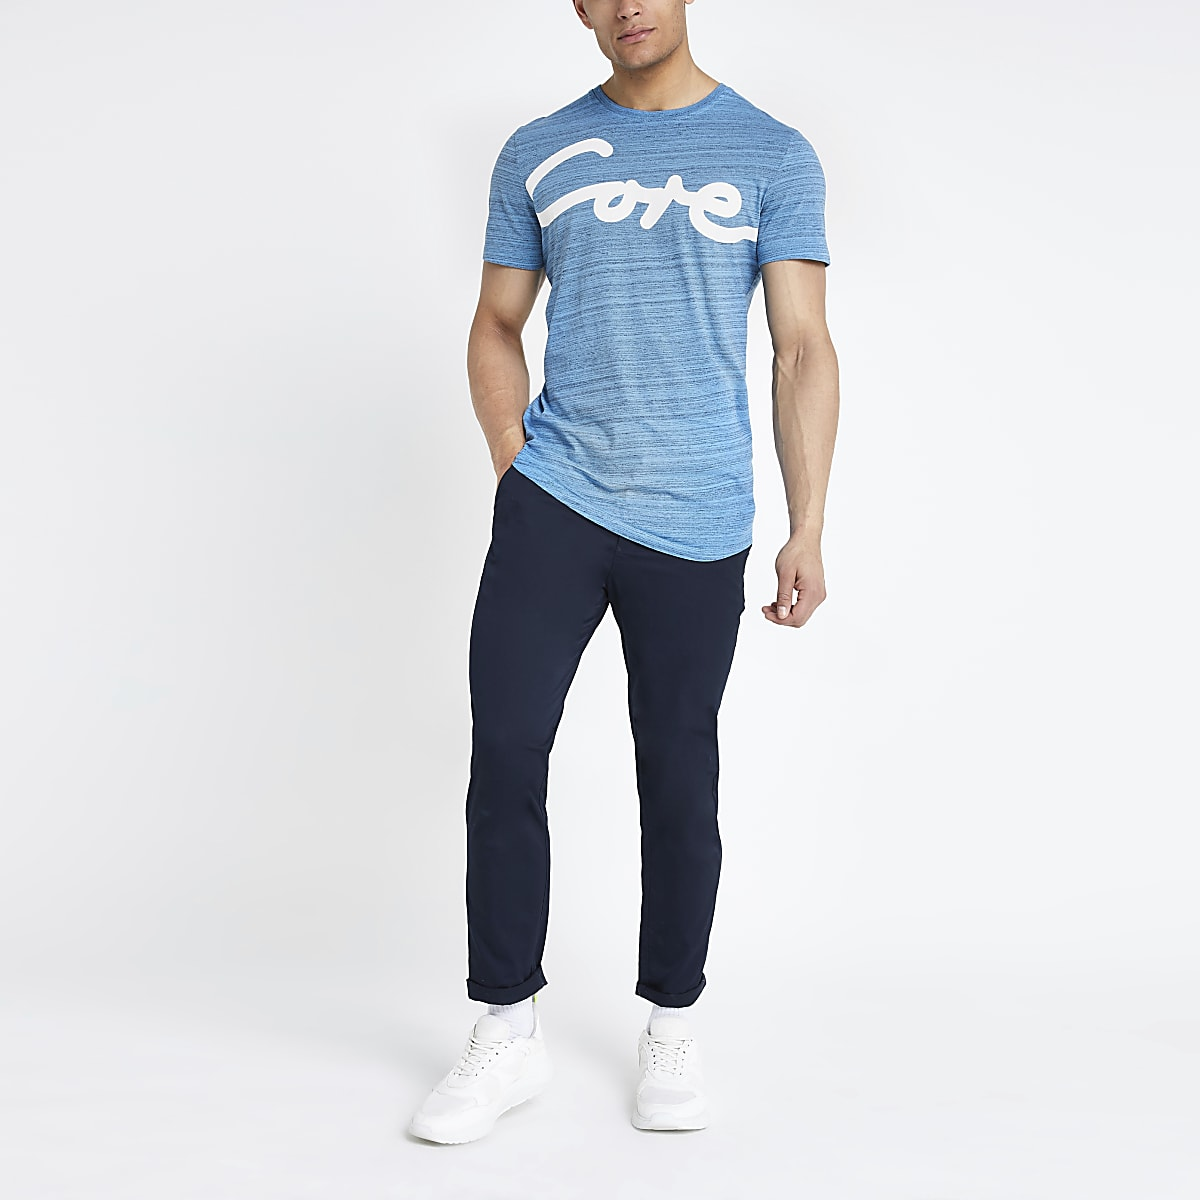 Jack and Jones blue printed T-shirt